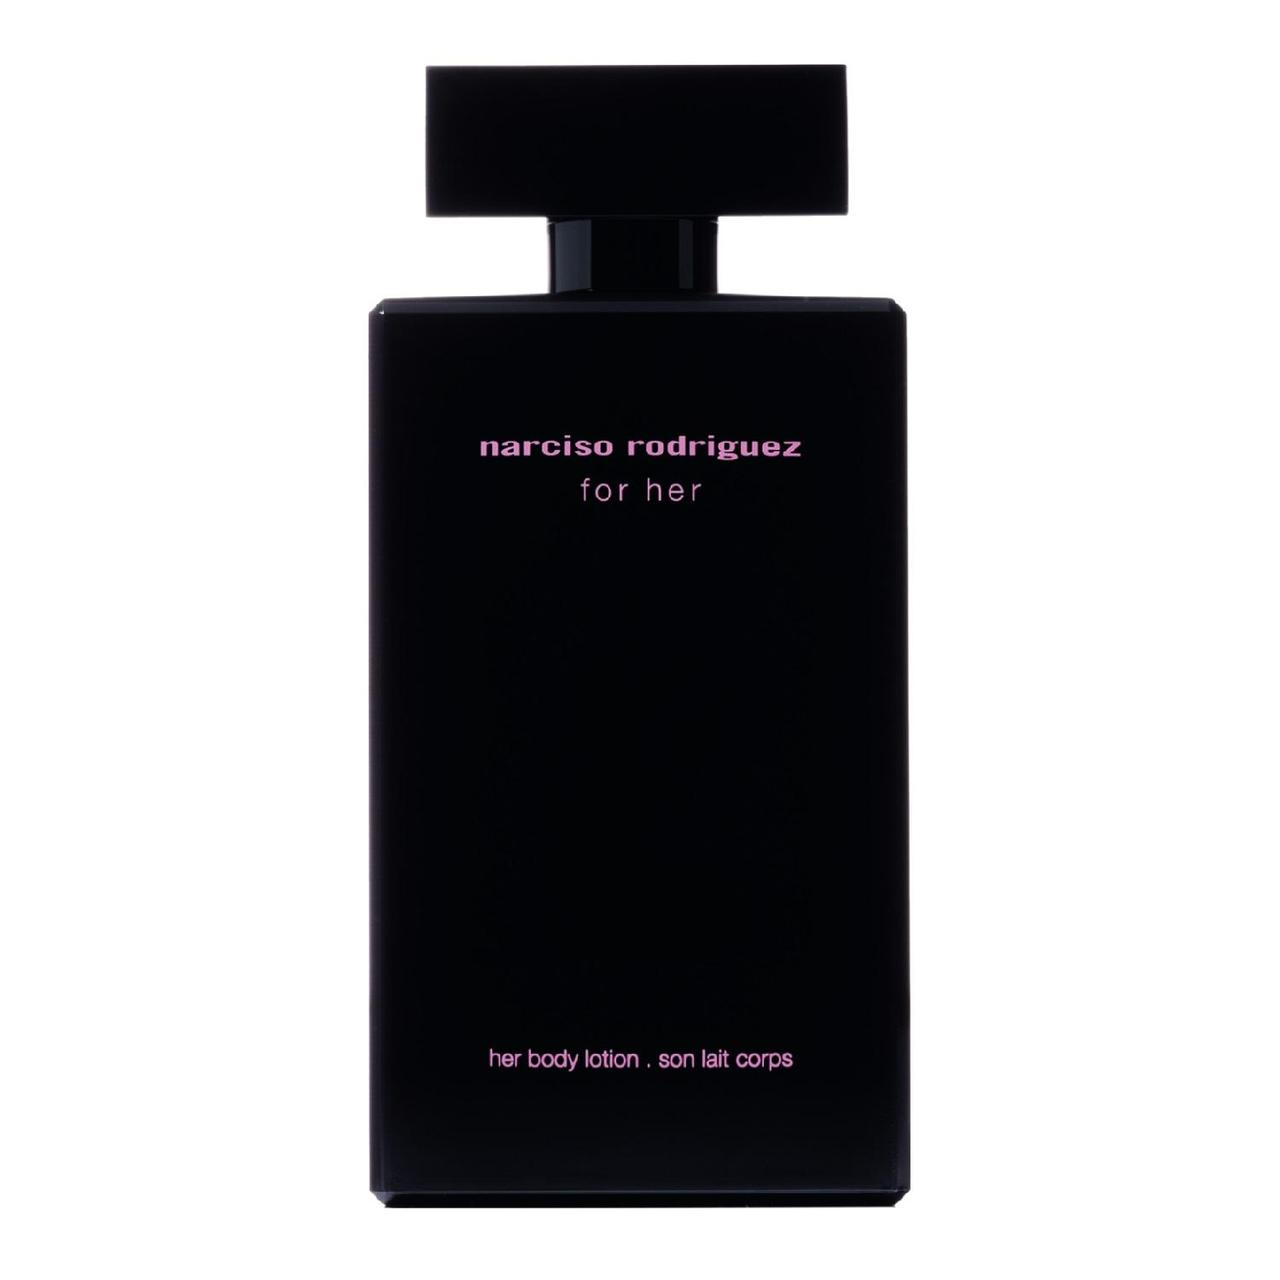 For Her Body Lotion 200ml by Narciso Rodriguez